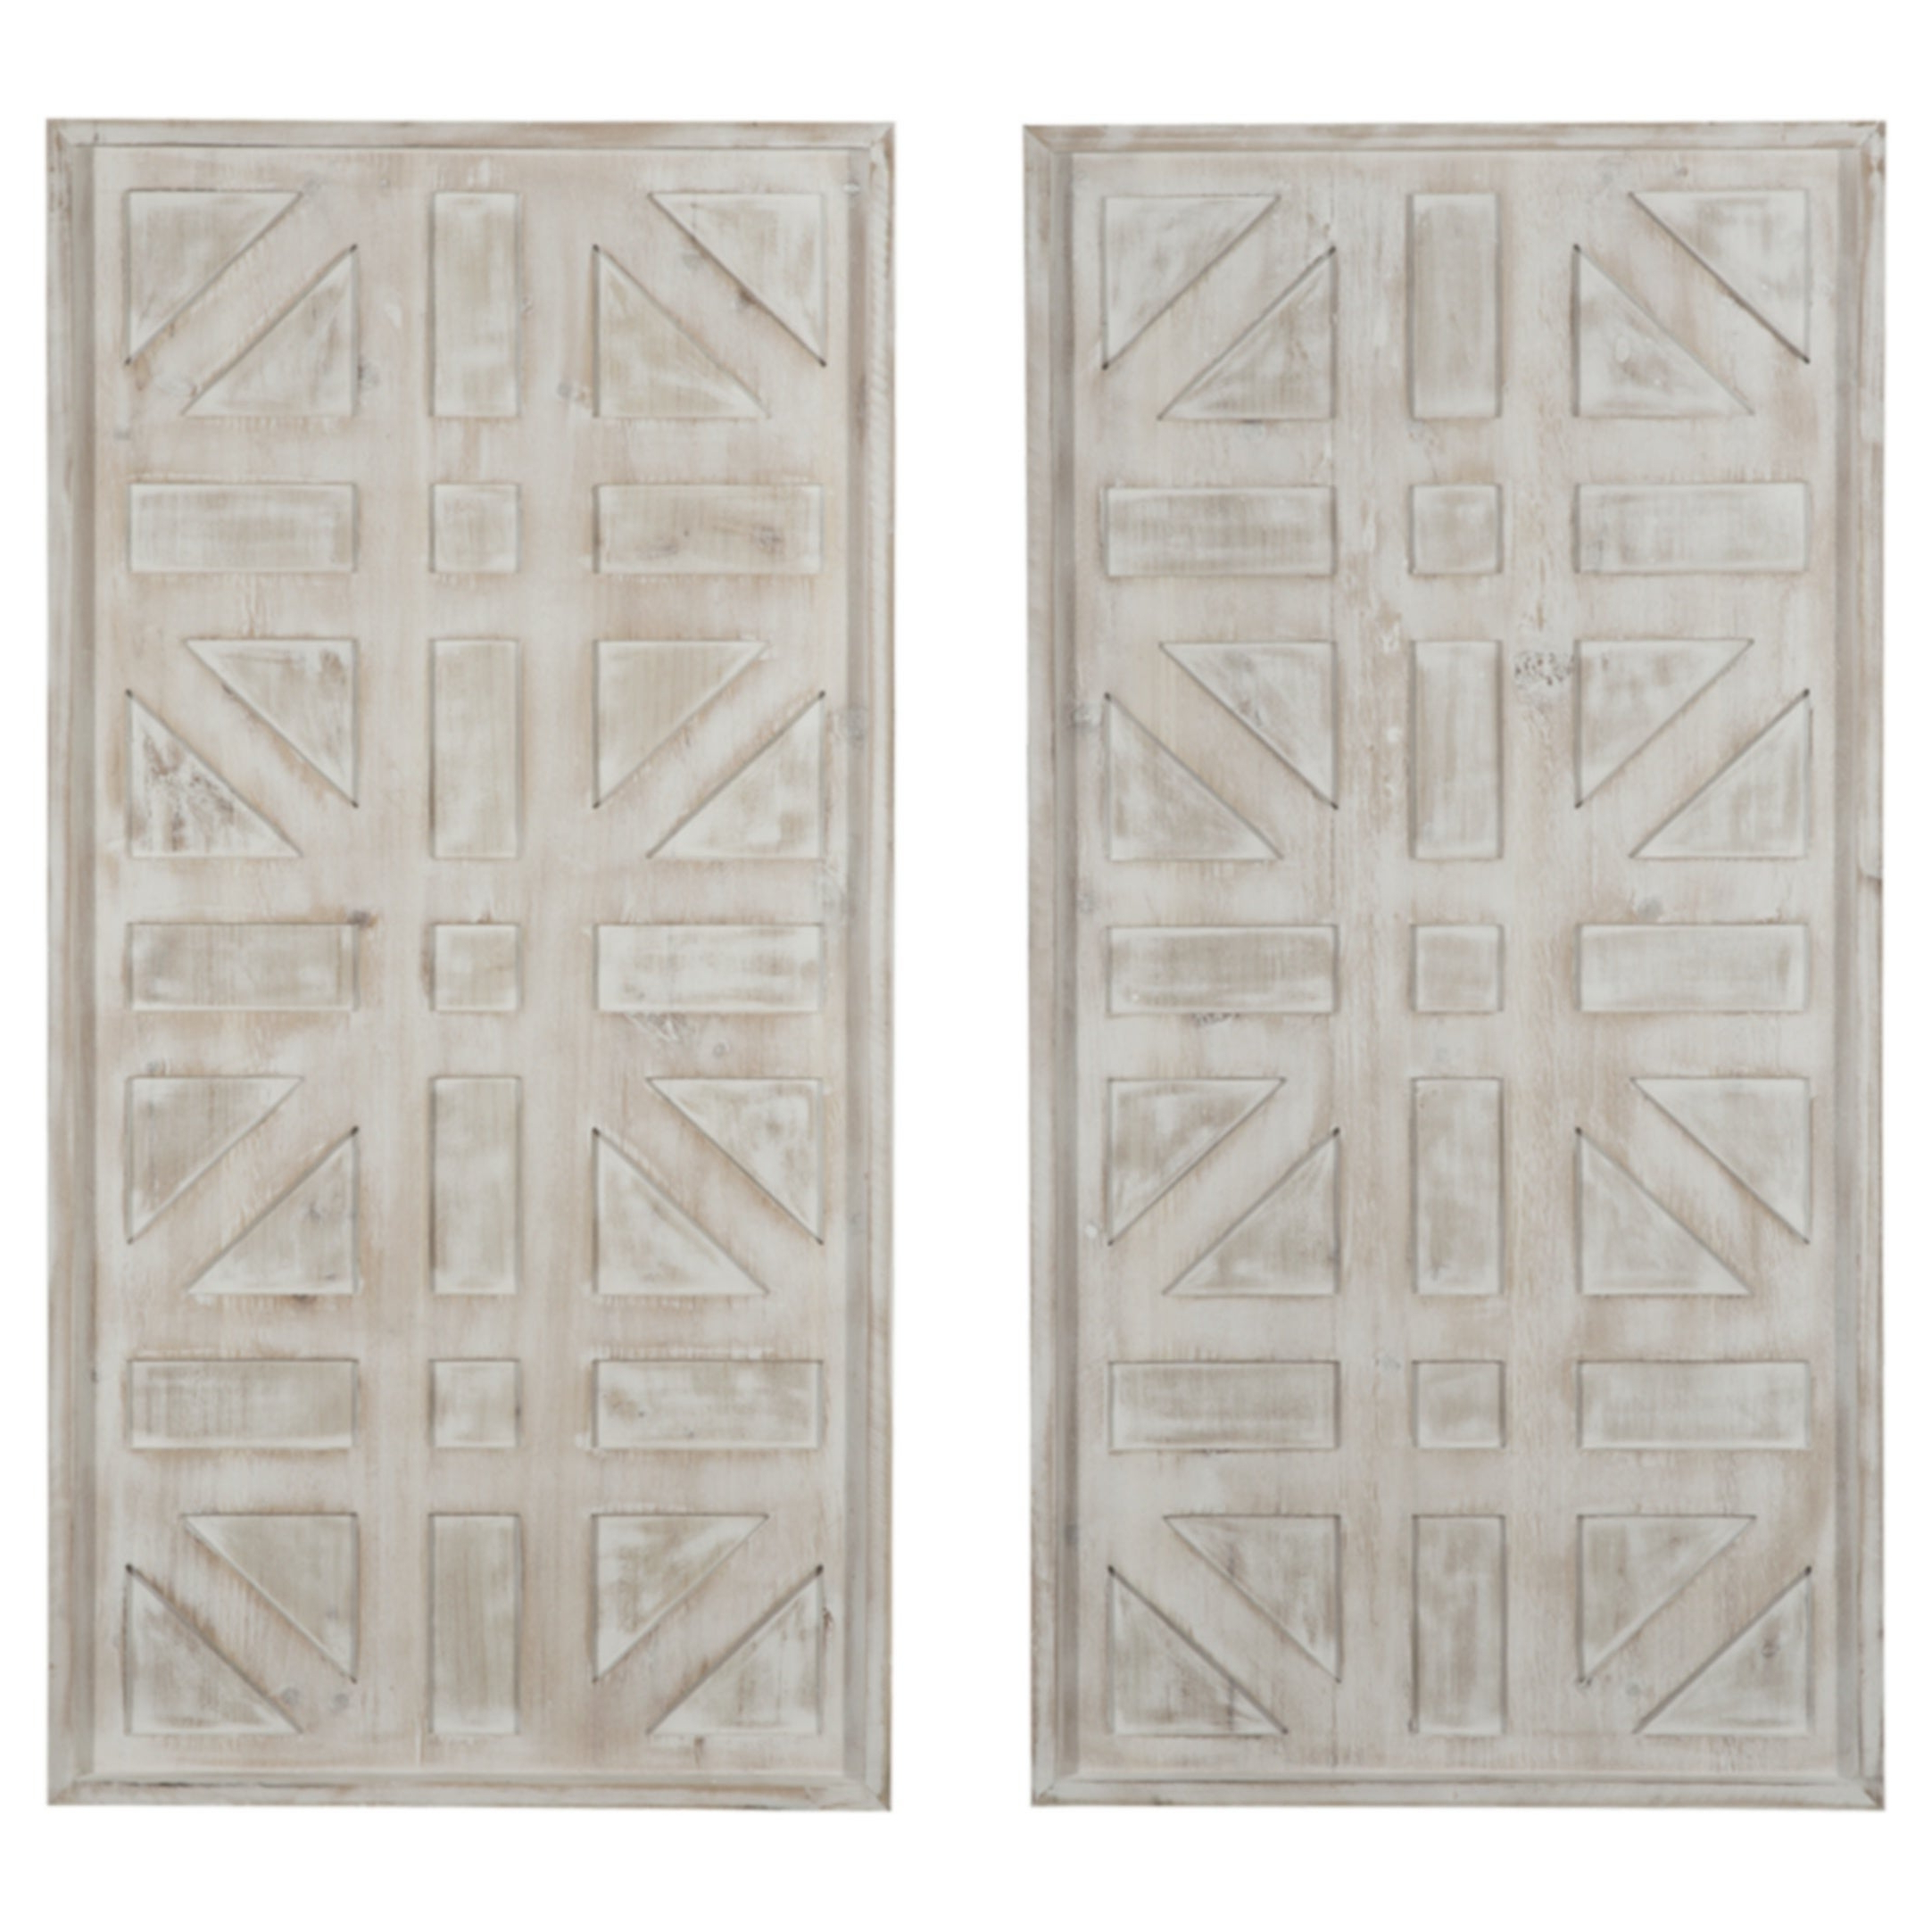 2 Piece Panel Wood Wall Decor Sets (Set Of 2) Pertaining To Recent Wood Wall Art (View 2 of 20)